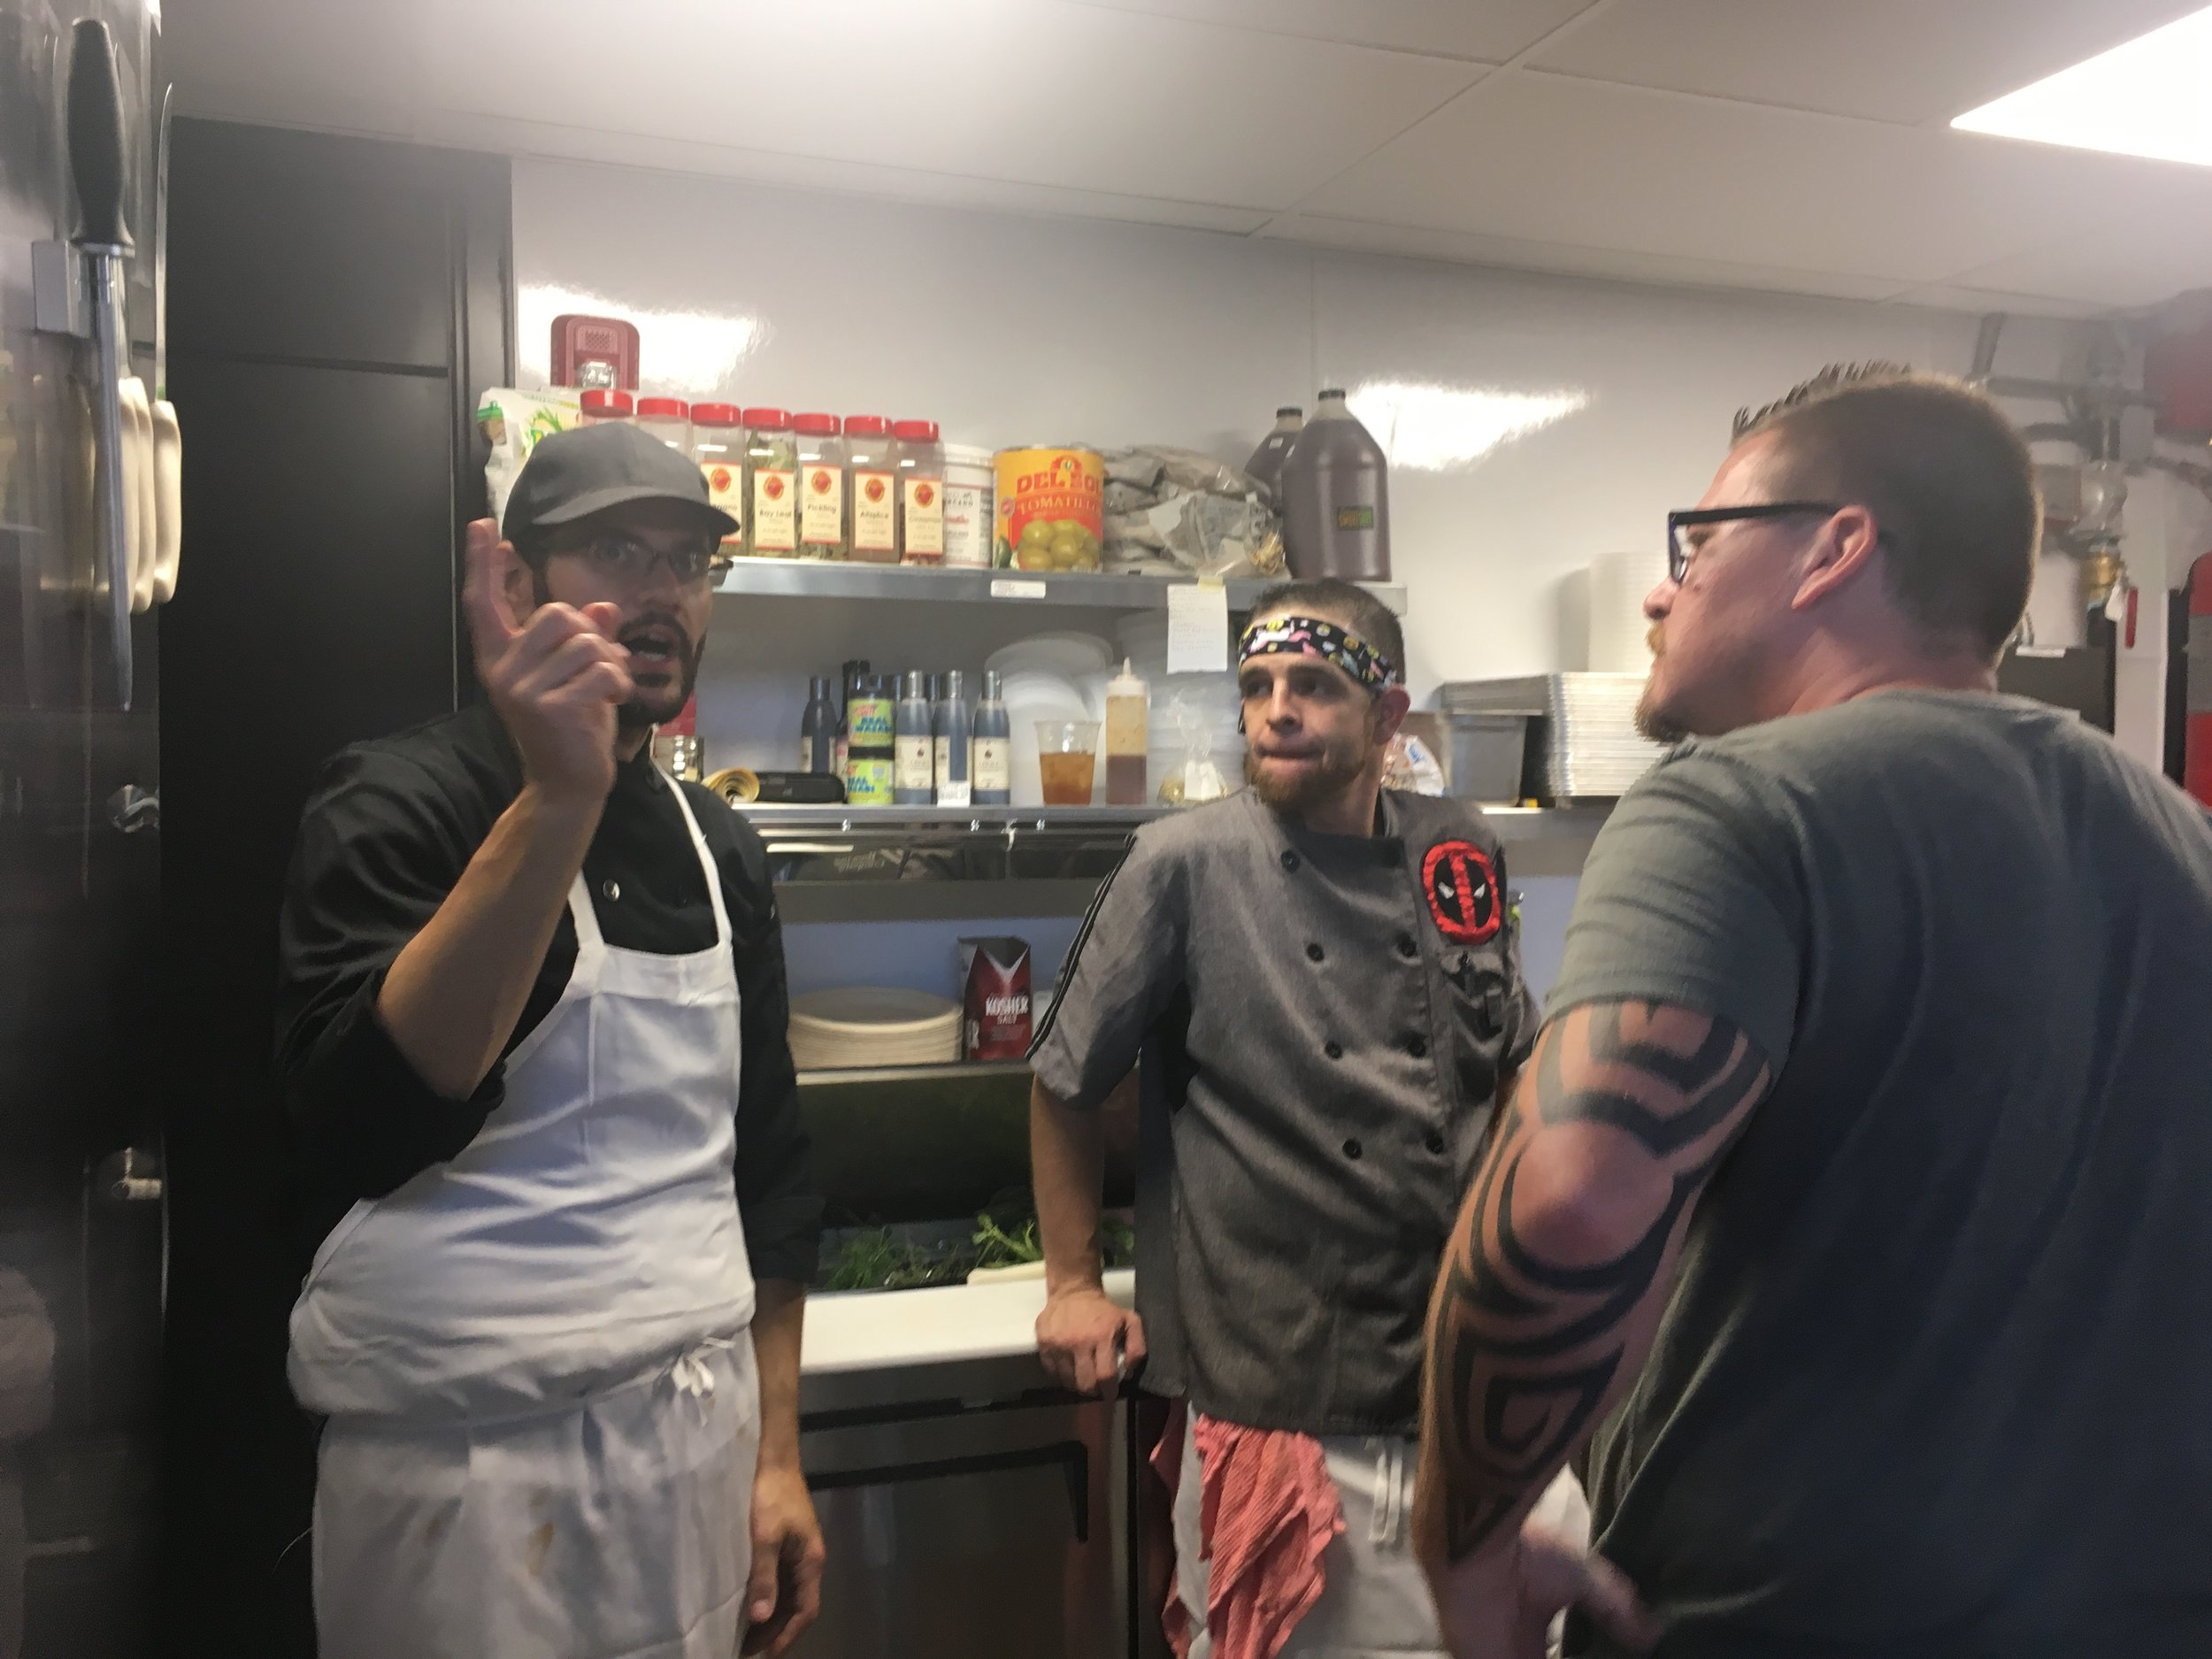 Chef Petro showed Jeff around the kitchen, what an awesome guy!